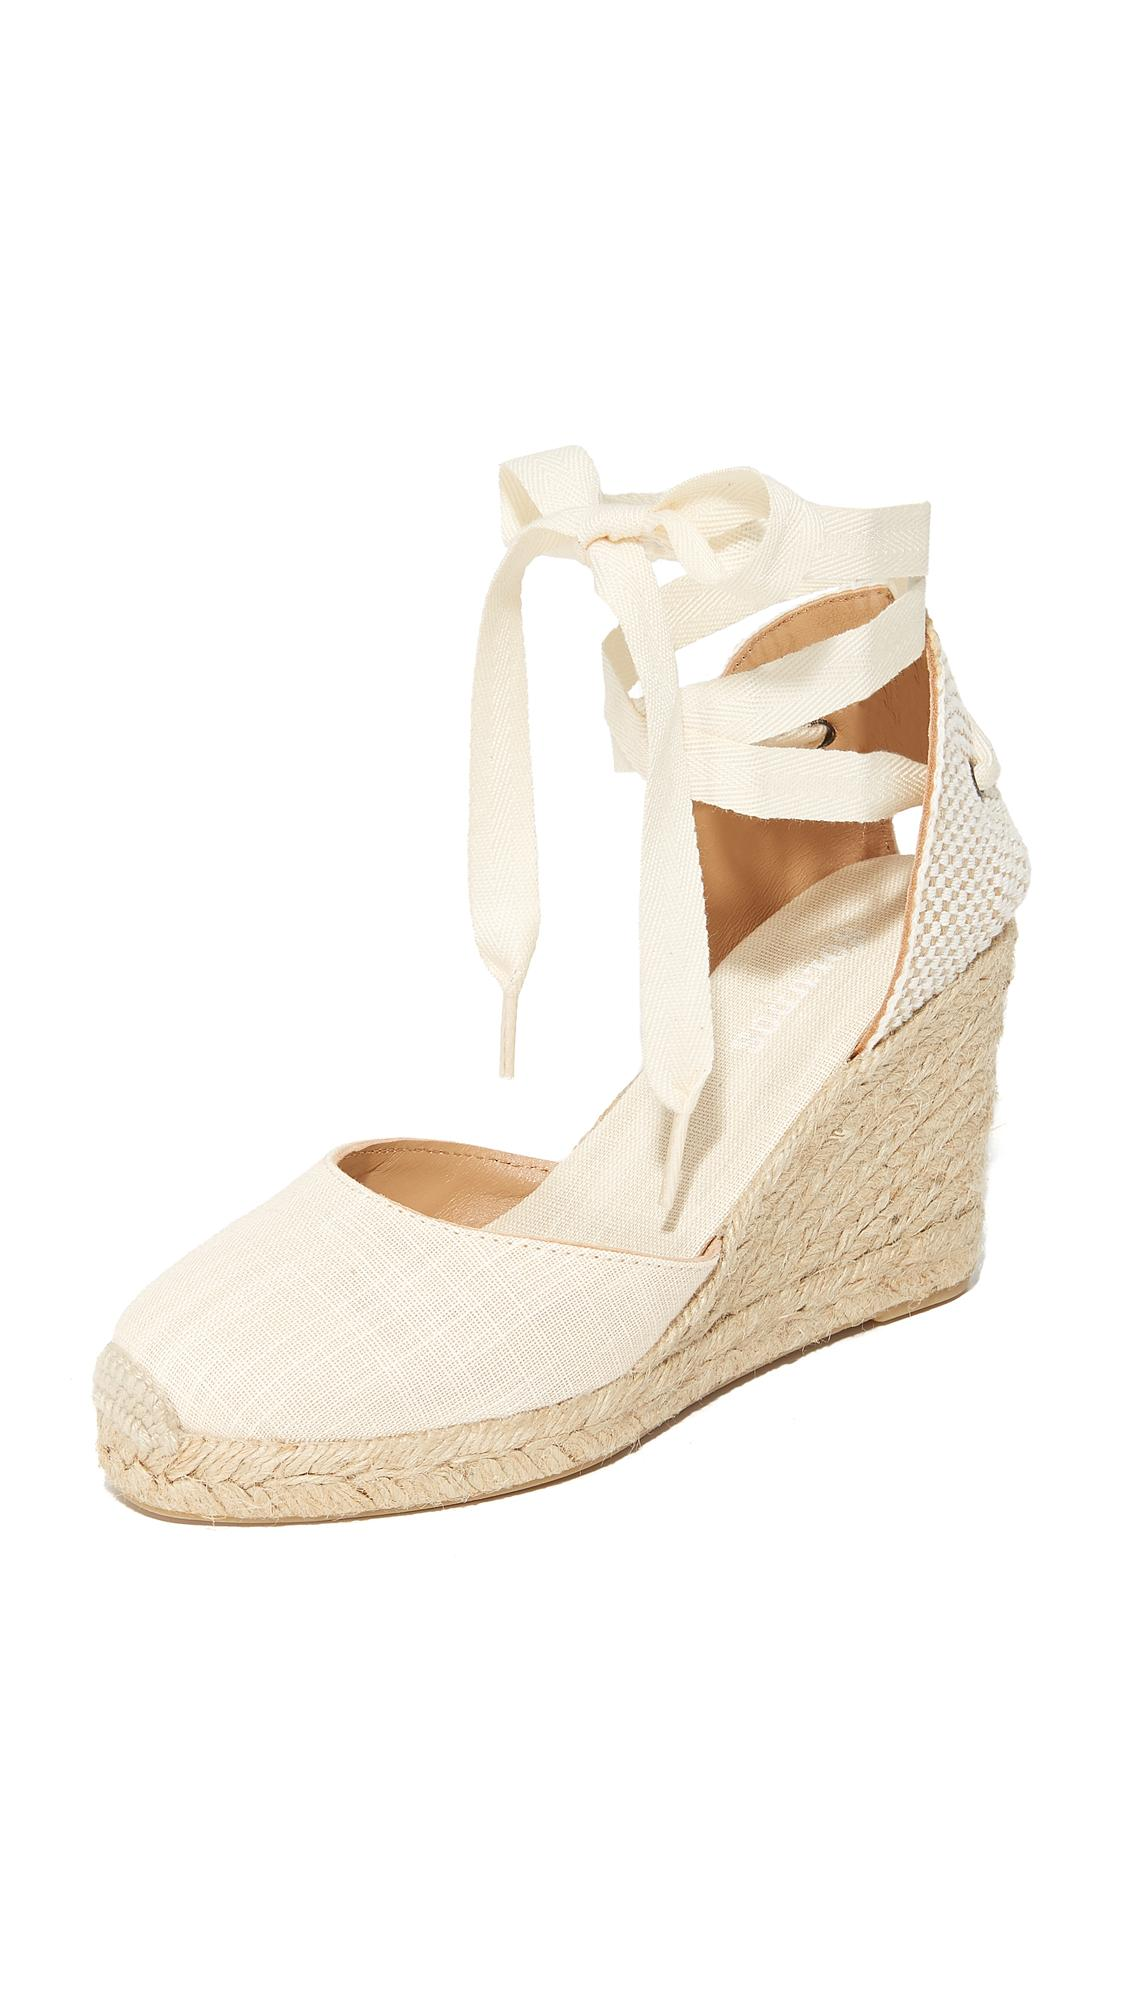 Lyst Soludos Tall Wedge Espadrilles